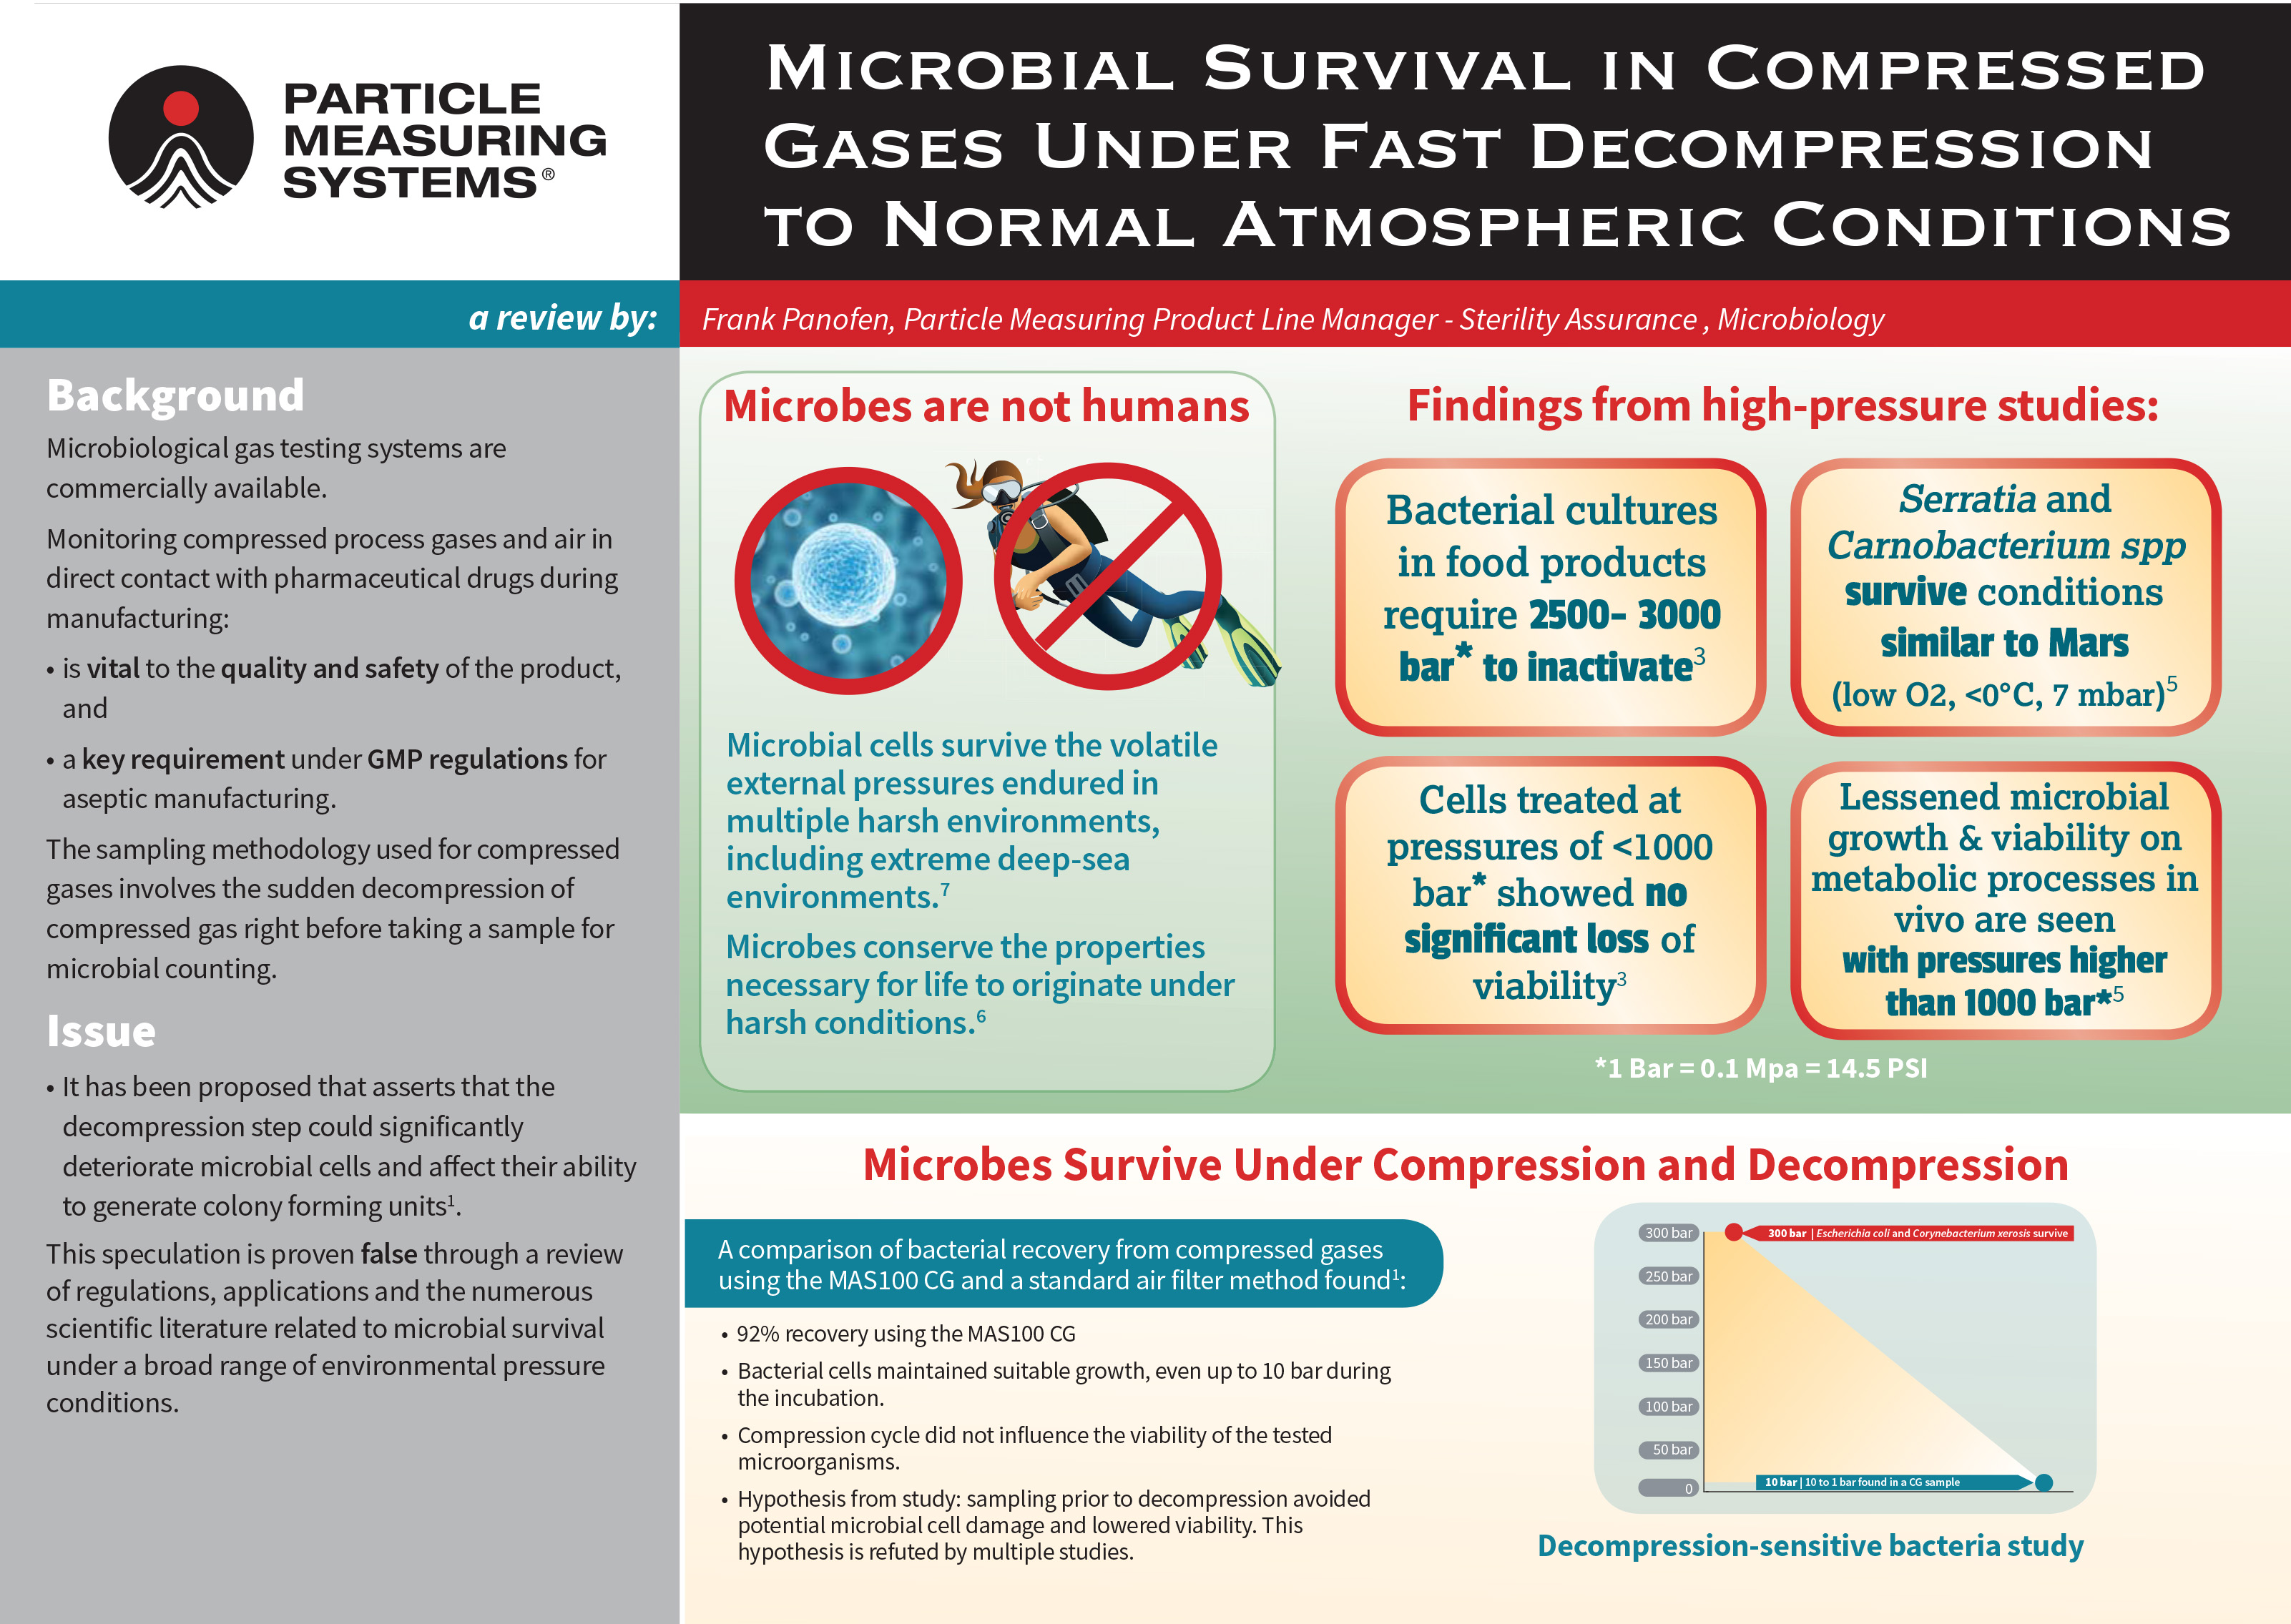 Poster: Microbial survival in compressed gases under fast decompression to normal atmospheric conditions